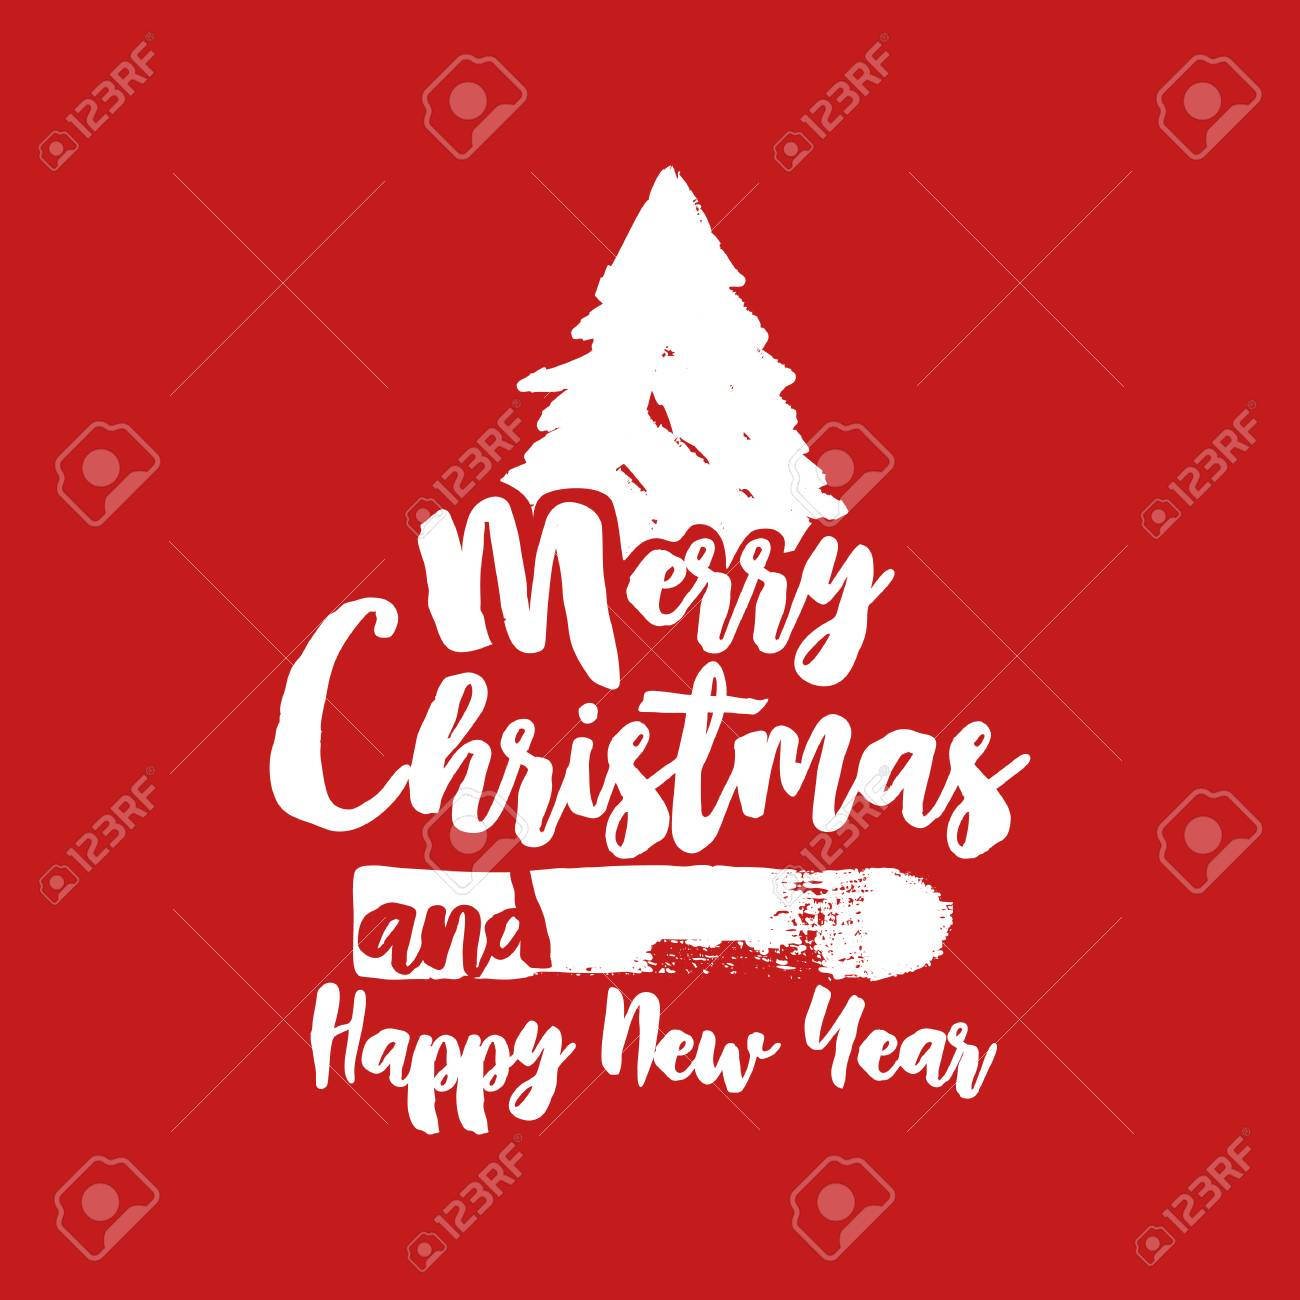 Merry Christmas Grunge Tree Text Quote, Calligraphy Lettering Design For  Holiday Season. Creative Red